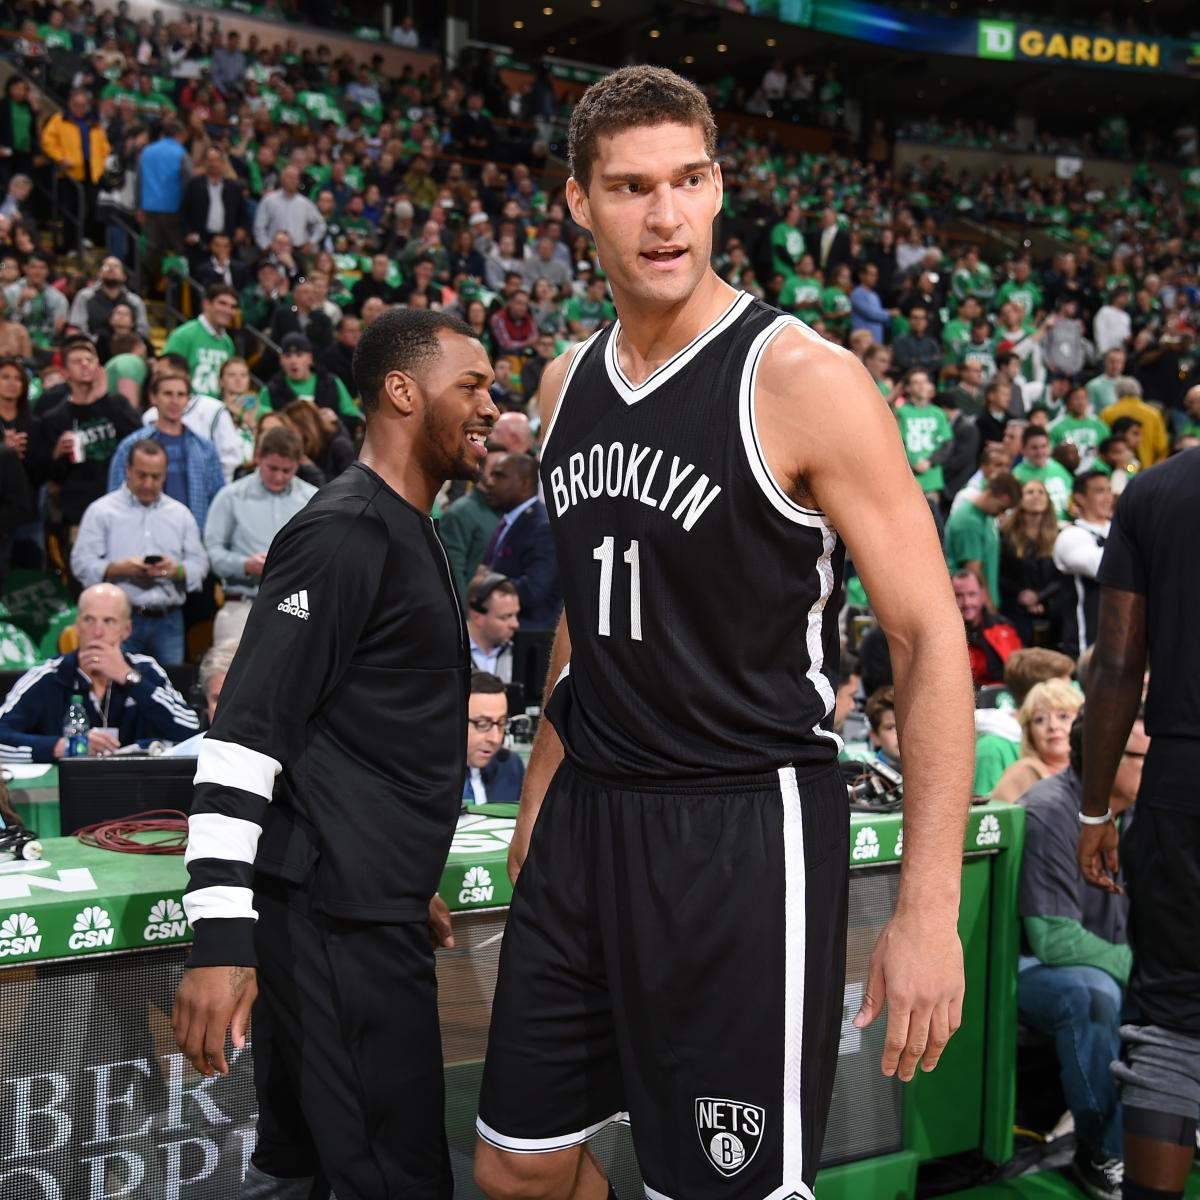 Mlb Rumors Analyzing All The Latest Whispers News And: NBA Trade Rumors: Analyzing Buzz On Brook Lopez, Rudy Gay